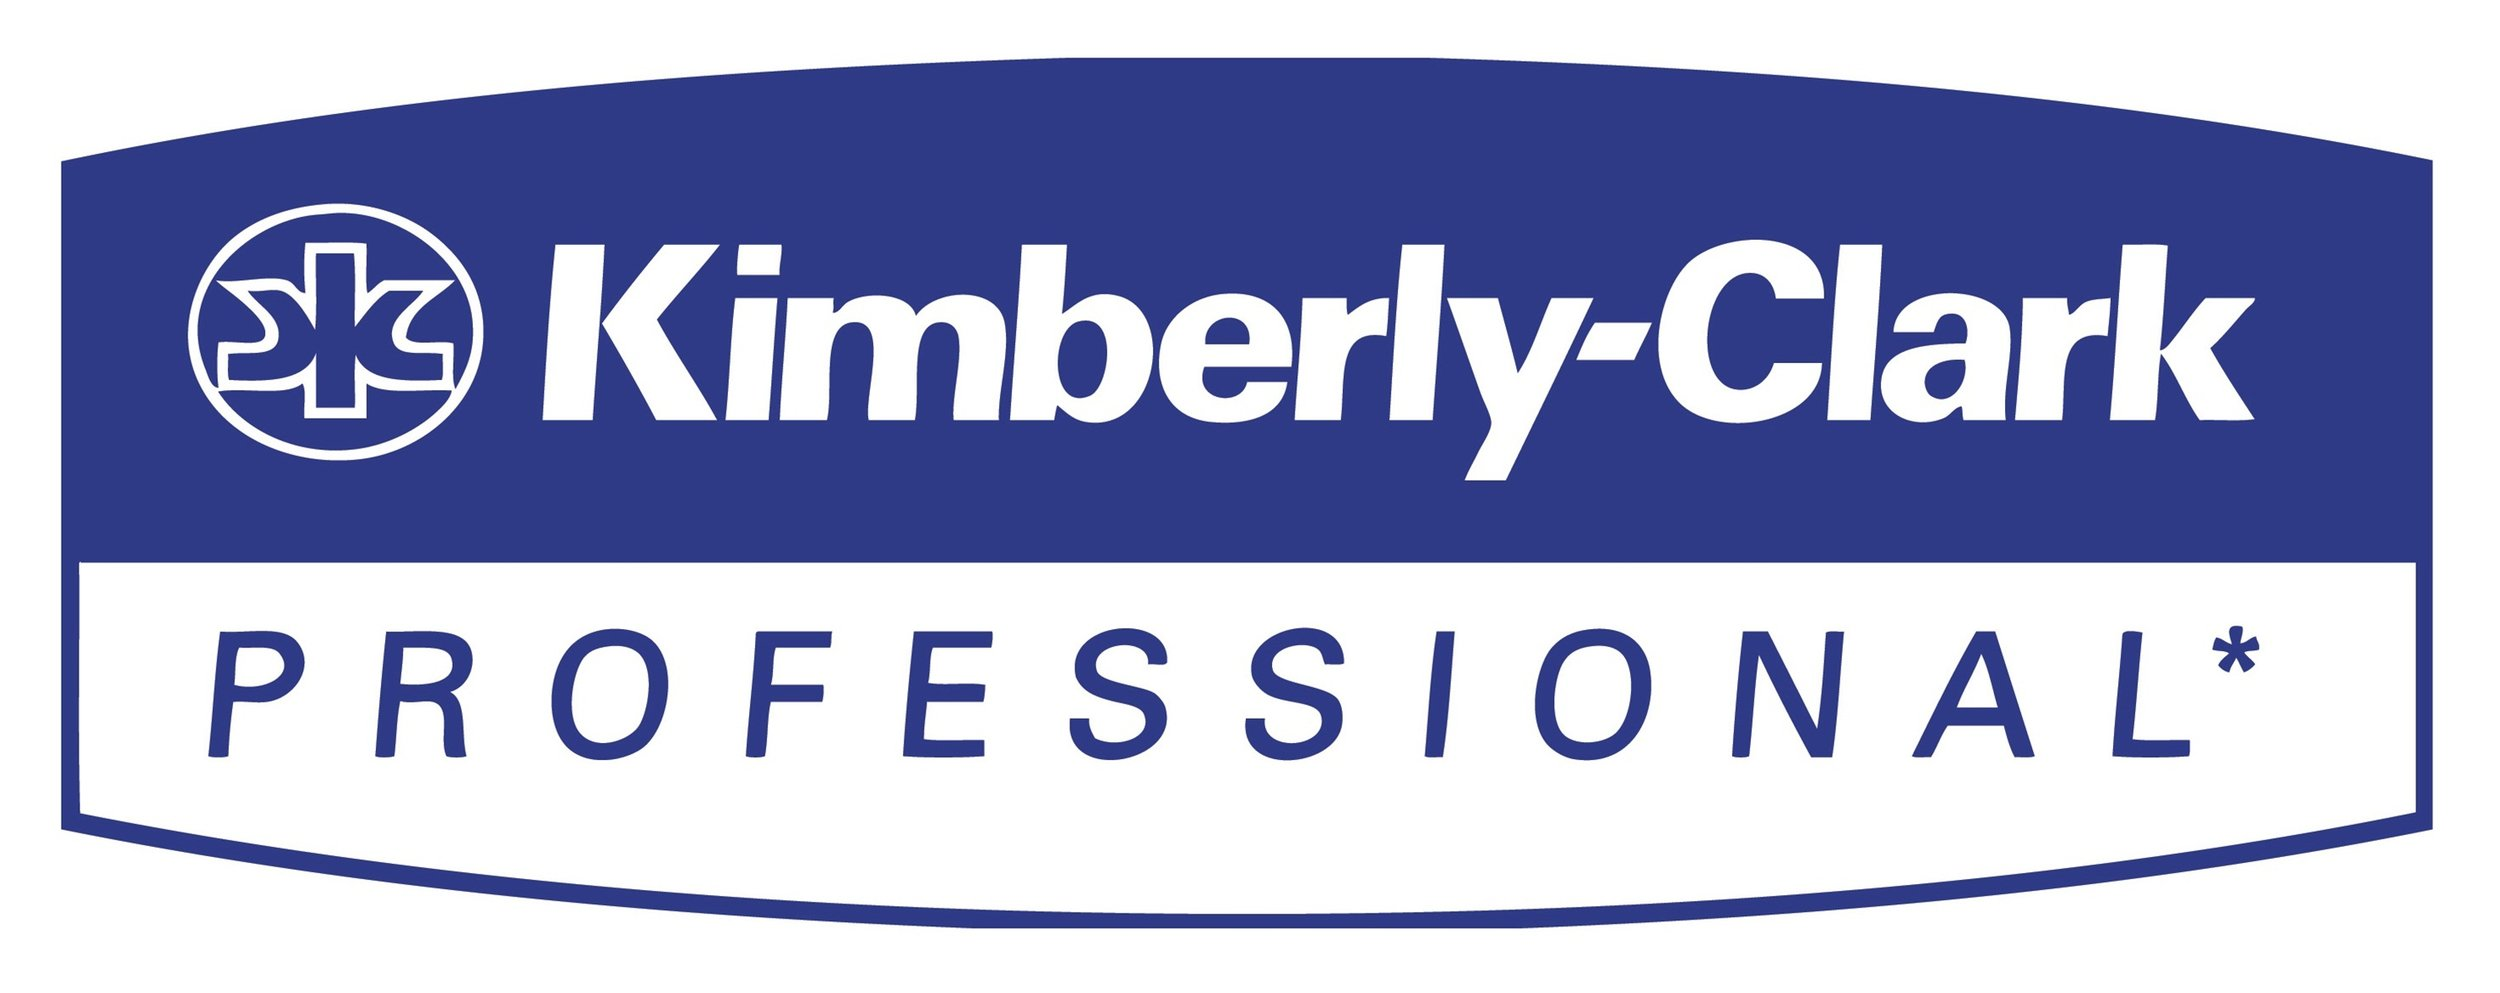 At their manufacturing plant, Kimberly-Clark saves  35% on air conditioning costs due to COOLNOMIX™. That equates to savings to 1,763 kWh per year.